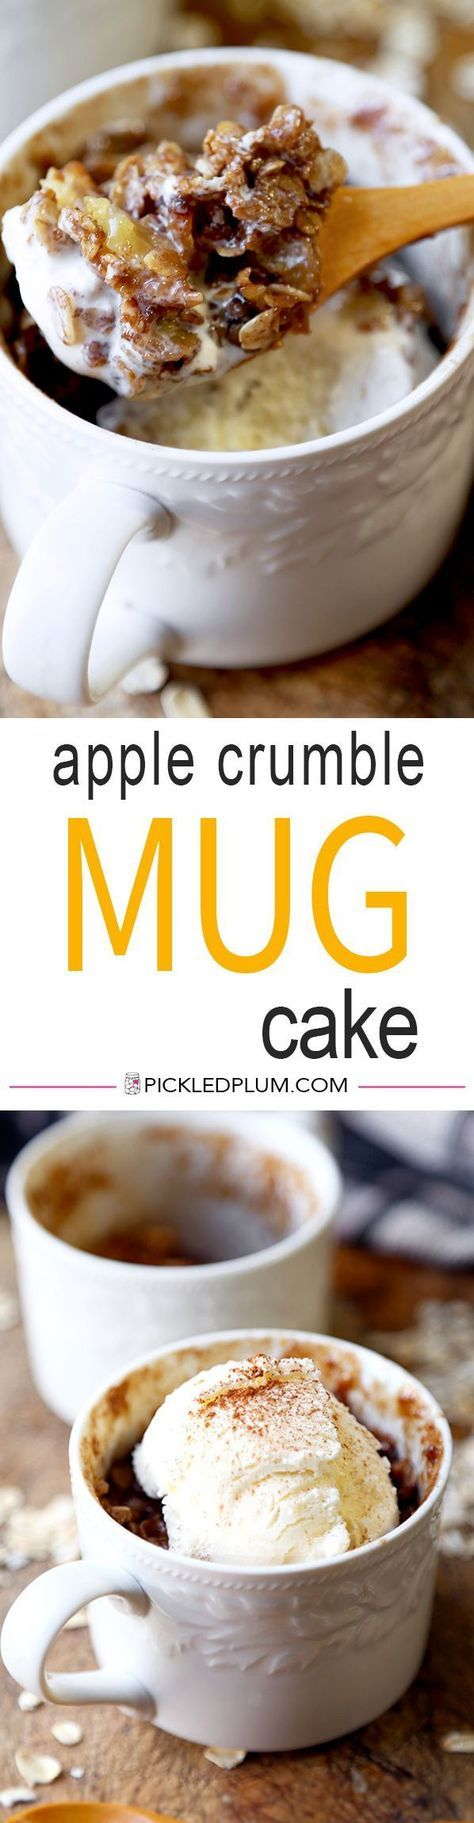 Apple Crumble Mug Cake | Recipe | Mug recipes, Microwave ...